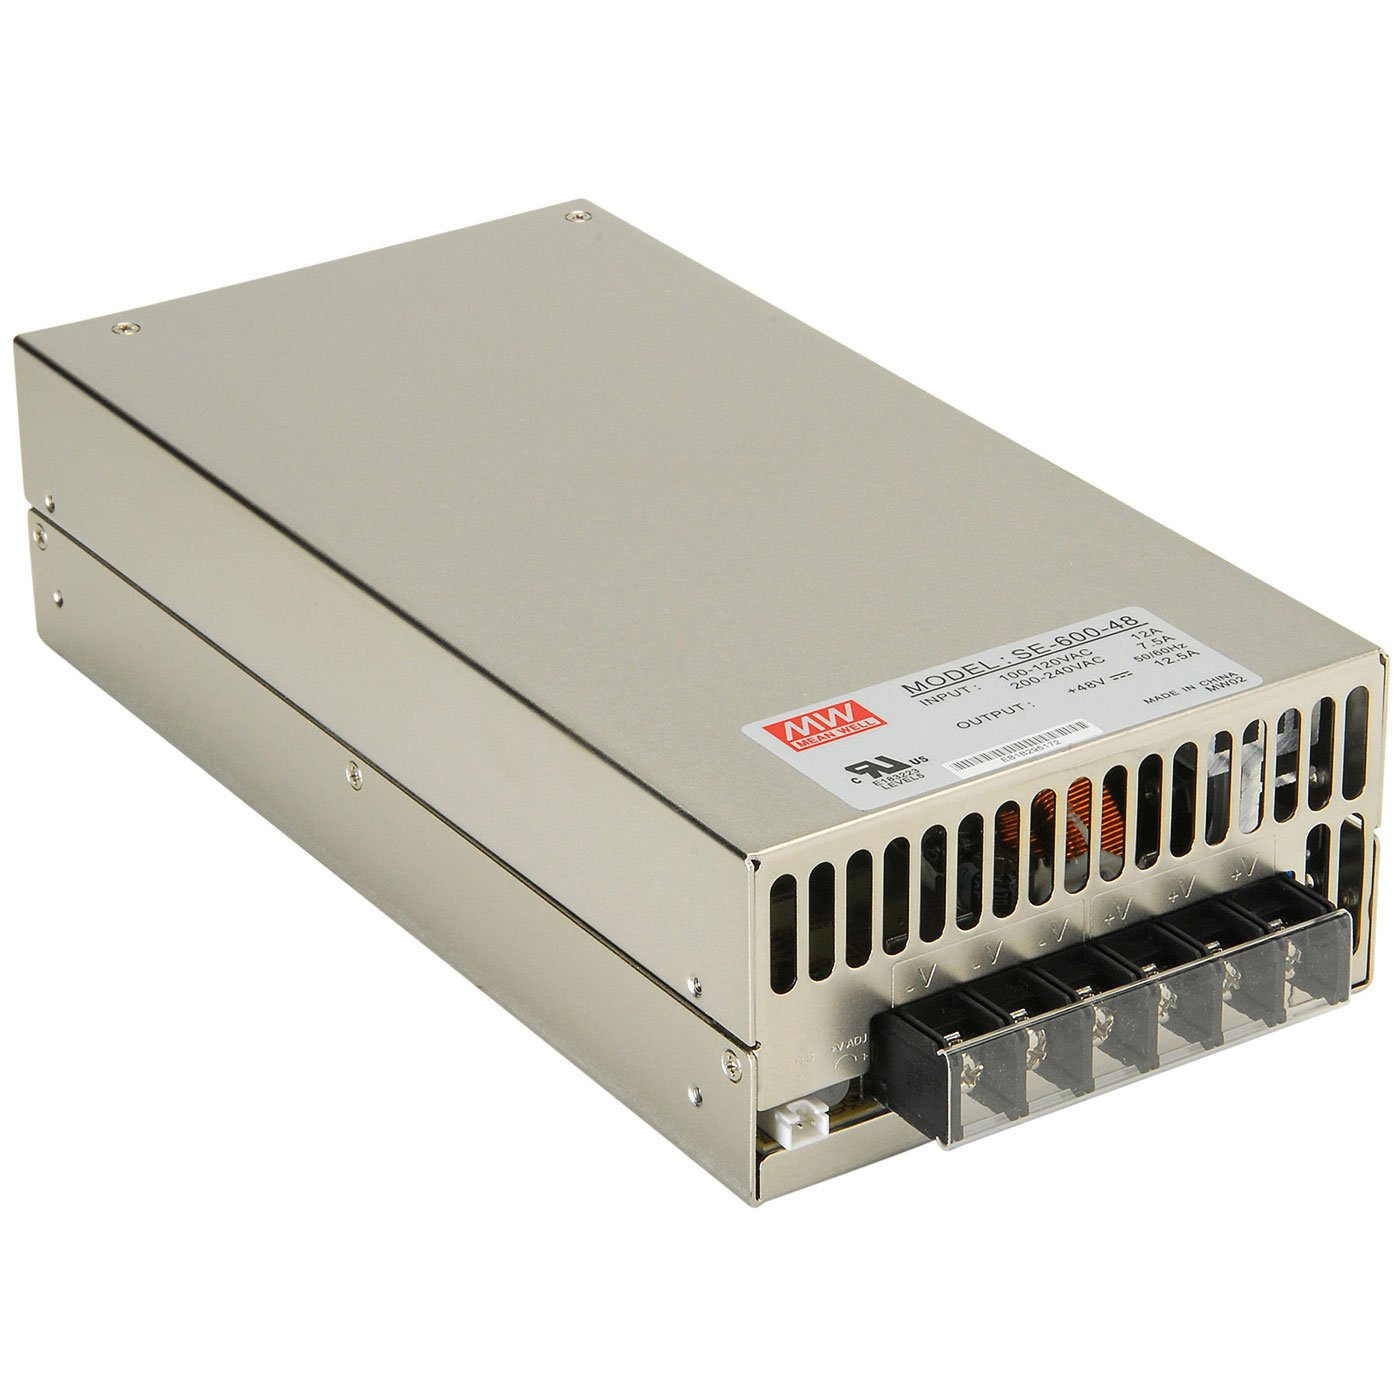 Parts Express 48 Vdc 125a 600w Regulated Power Supply 220vac To 24vdc Using Voltage Regulator Computers Accessories